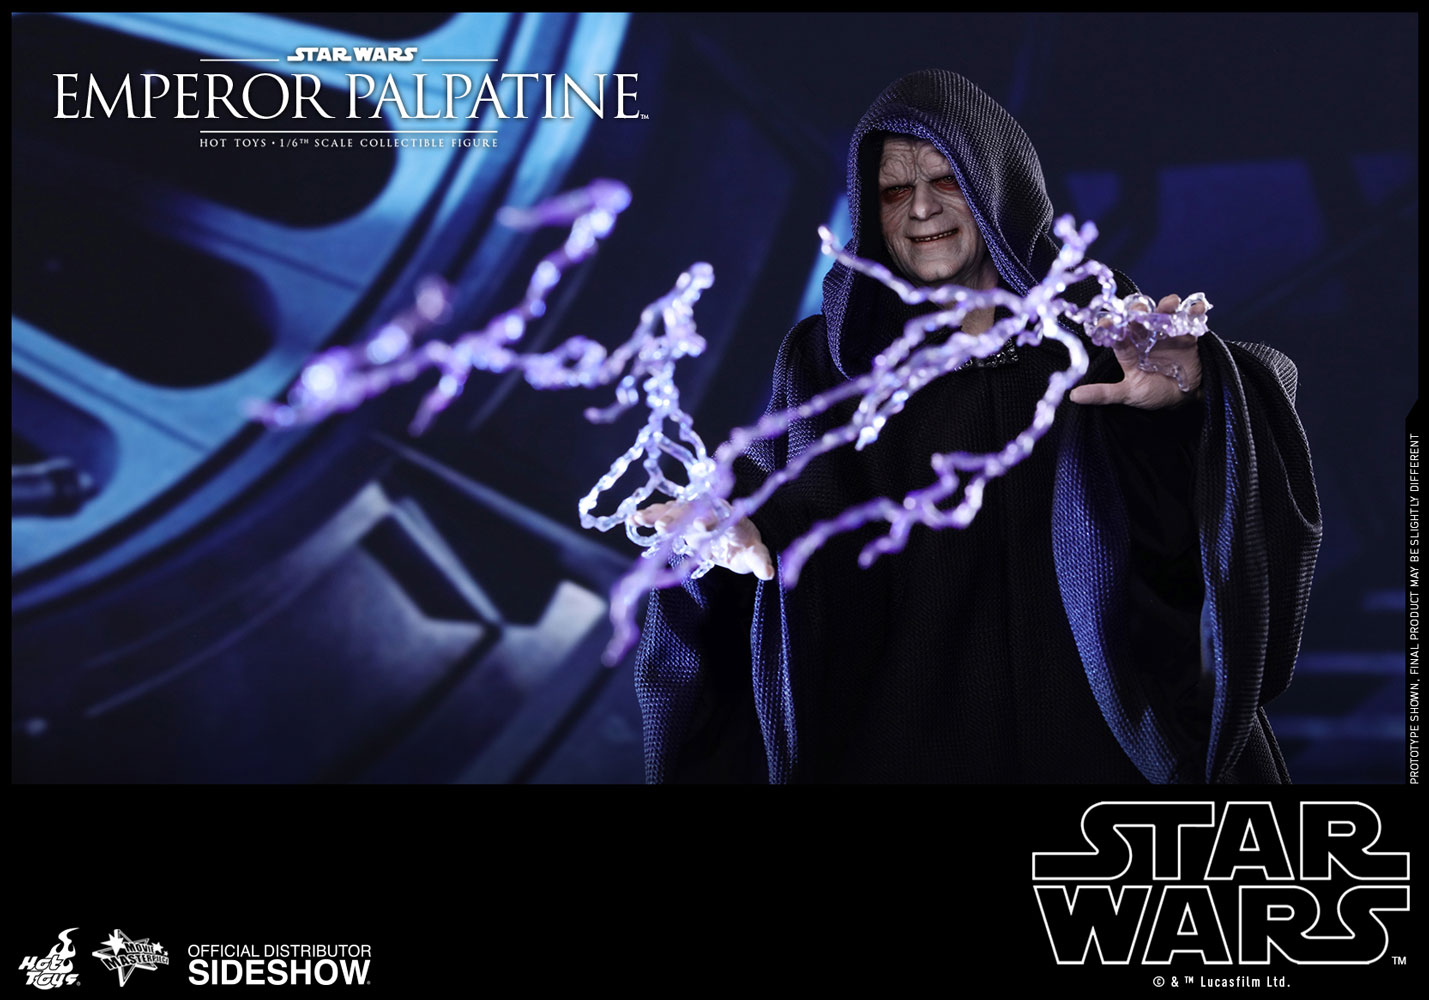 Star Wars Emperor Palpatine Sixth Scale Figure By Hot Toys Sideshow Collectibles